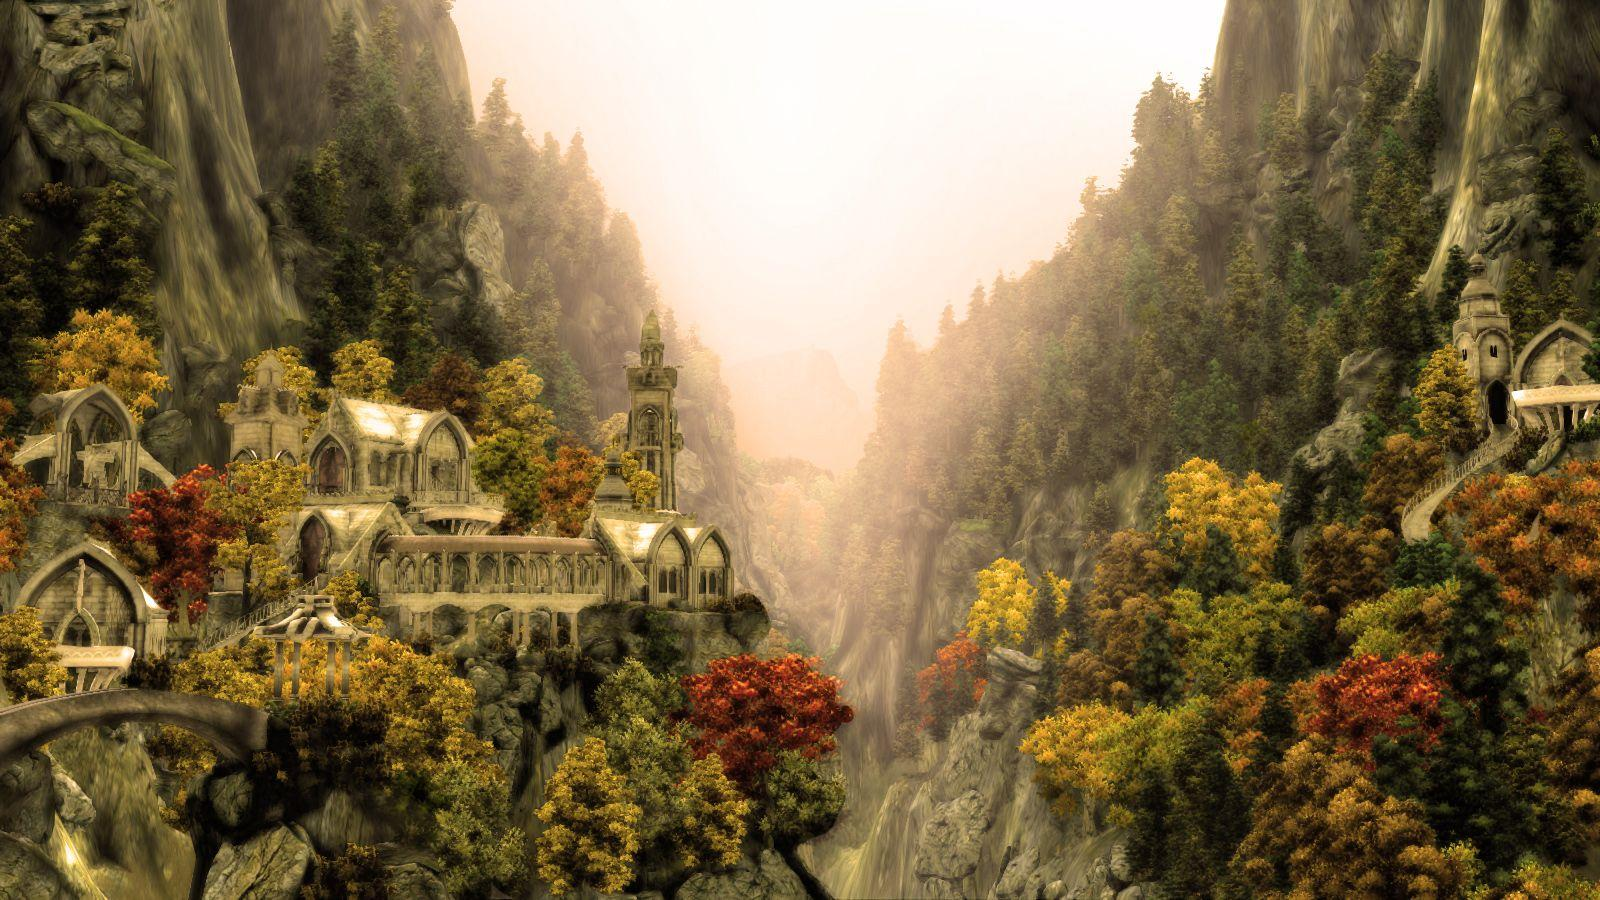 rivendell wallpaper-#2